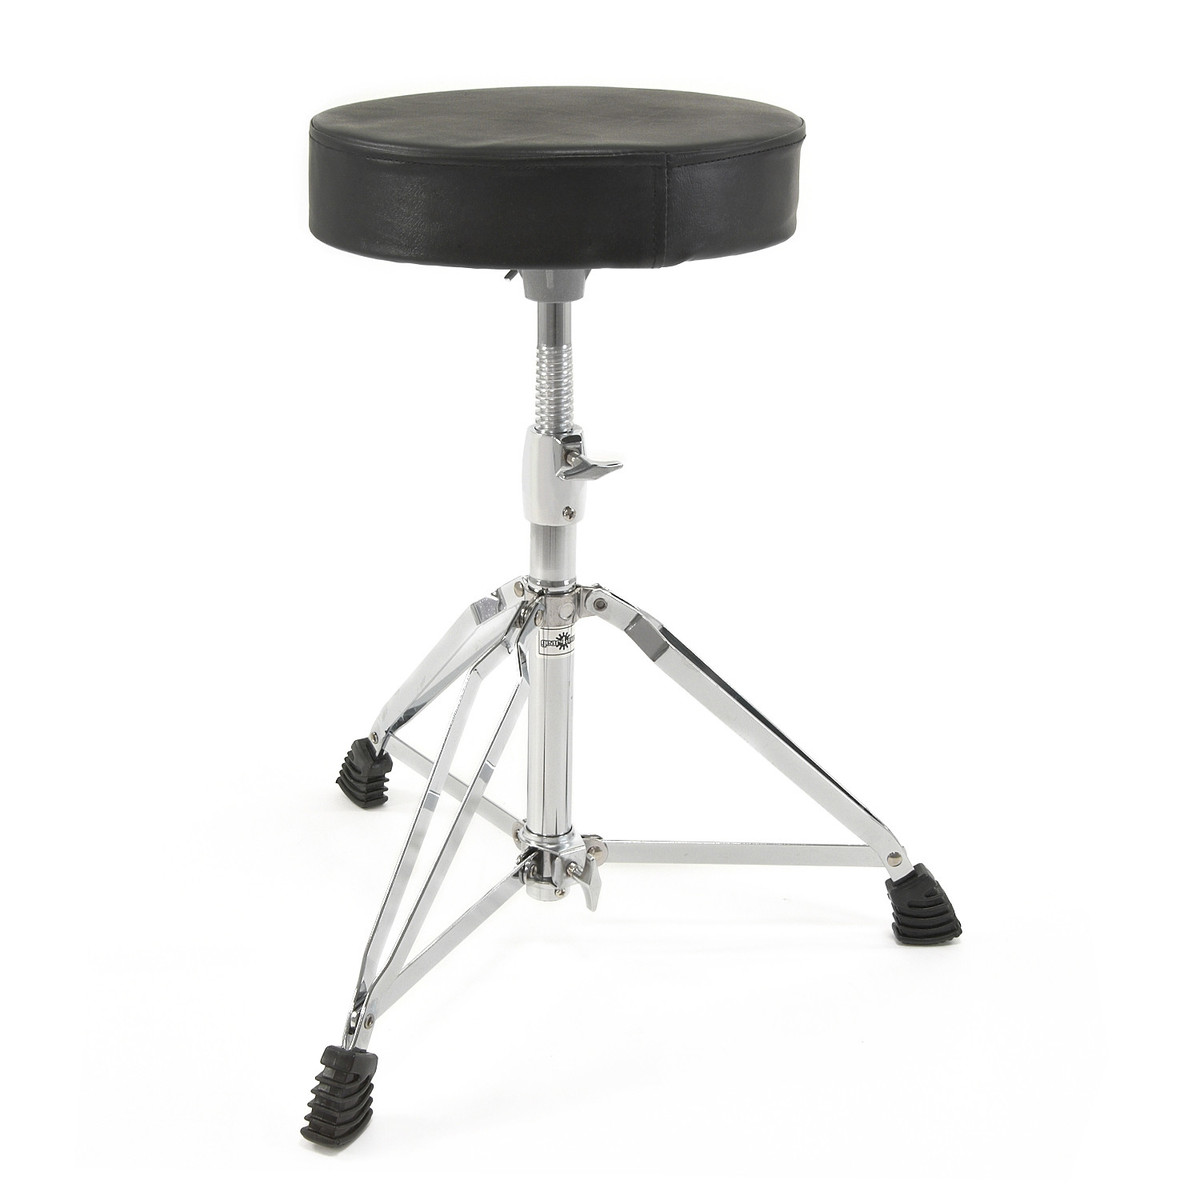 Yamaha dtx450k electronic drum kit with stool and sticks for Yamaha dtx450k electronic drum set